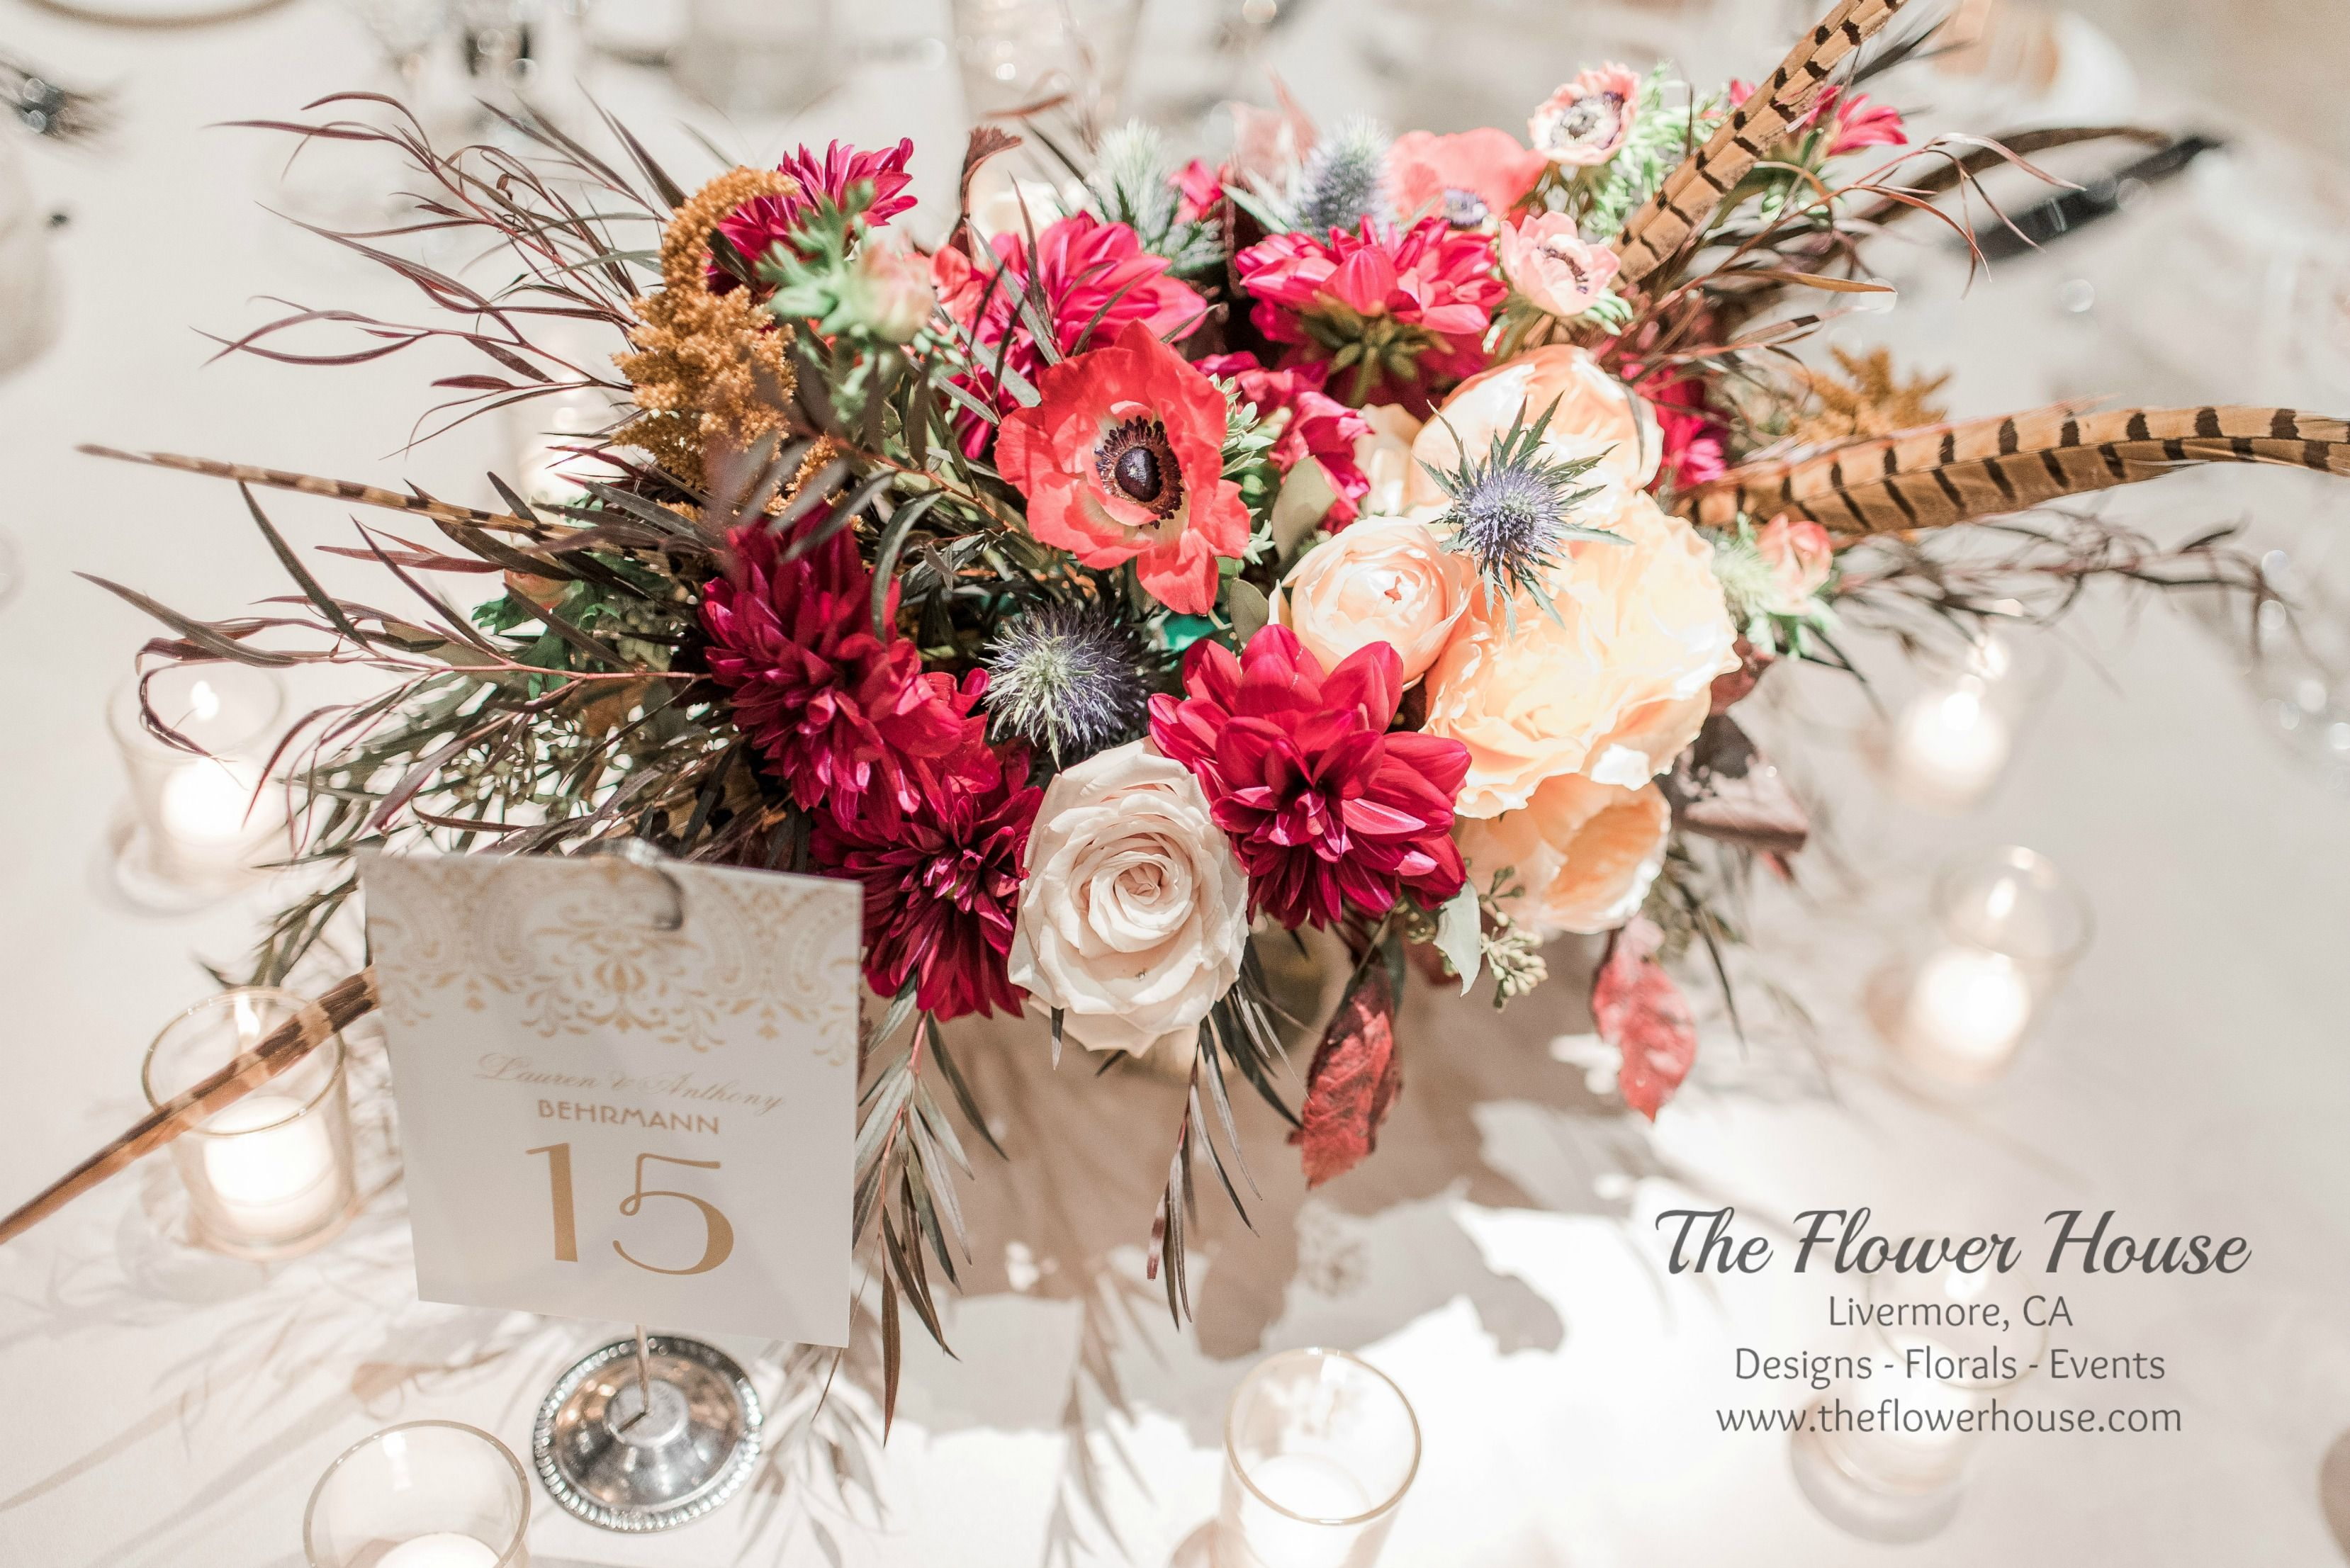 wedding tables centerpieces table numbers fall flowers red rh pinterest com